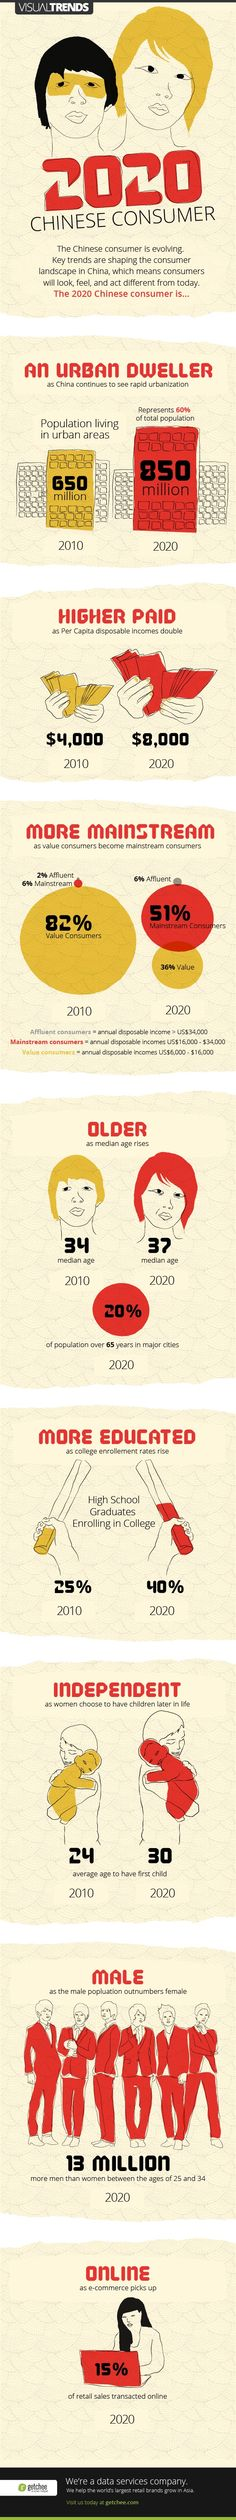 2020 Chinese Consumers: New China! #infographic #Visual #Retail